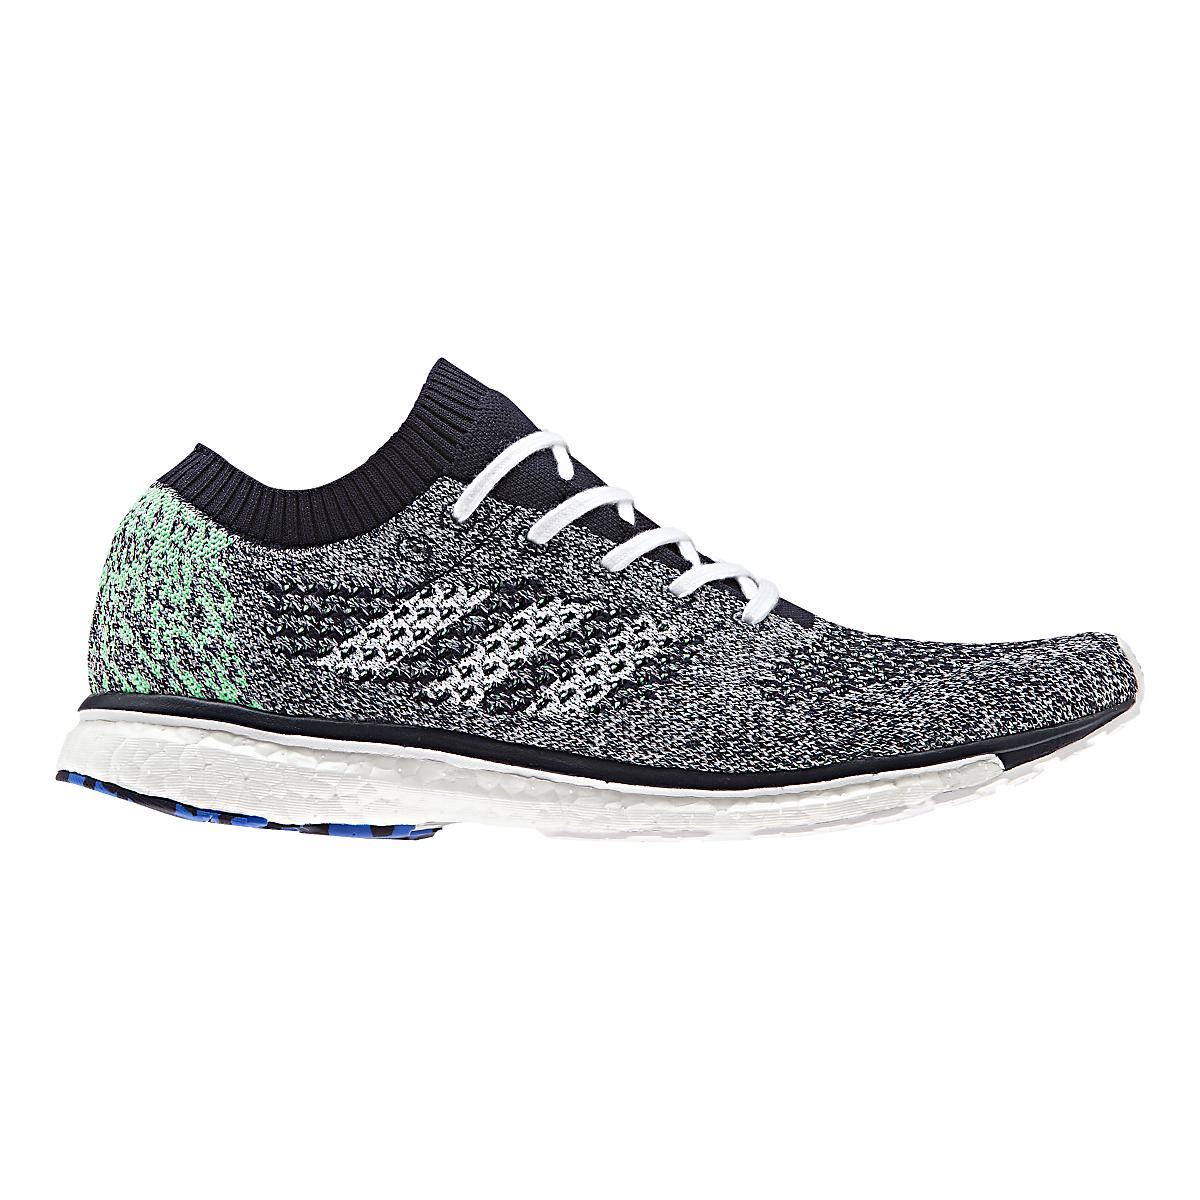 big sale be138 5ee77 Mens adidas adizero Prime Running Shoe at Road Runner Sports